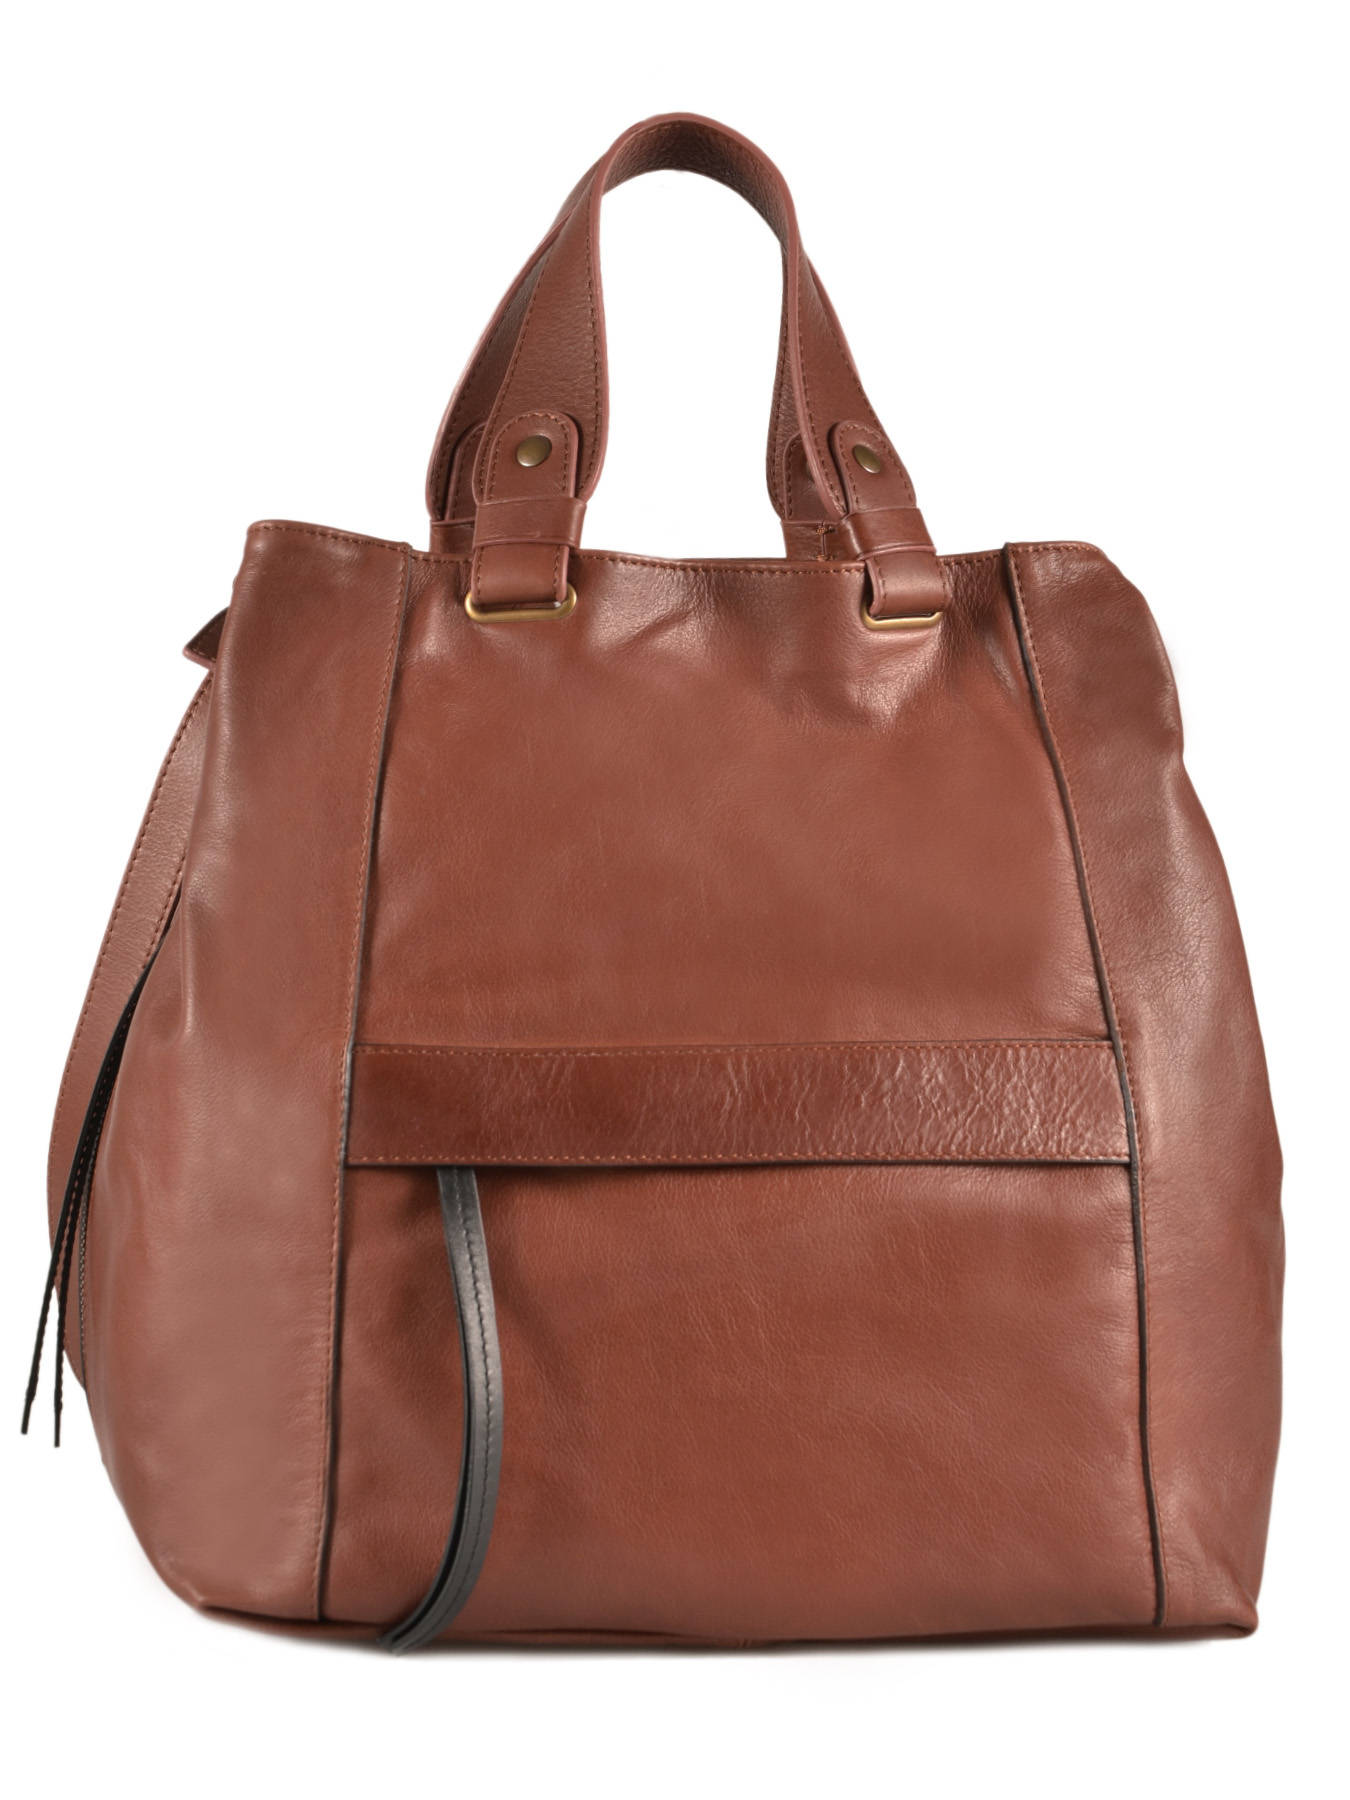 Sac Porté Main Two Color Cuir Gerard darel Marron two color DDS23401